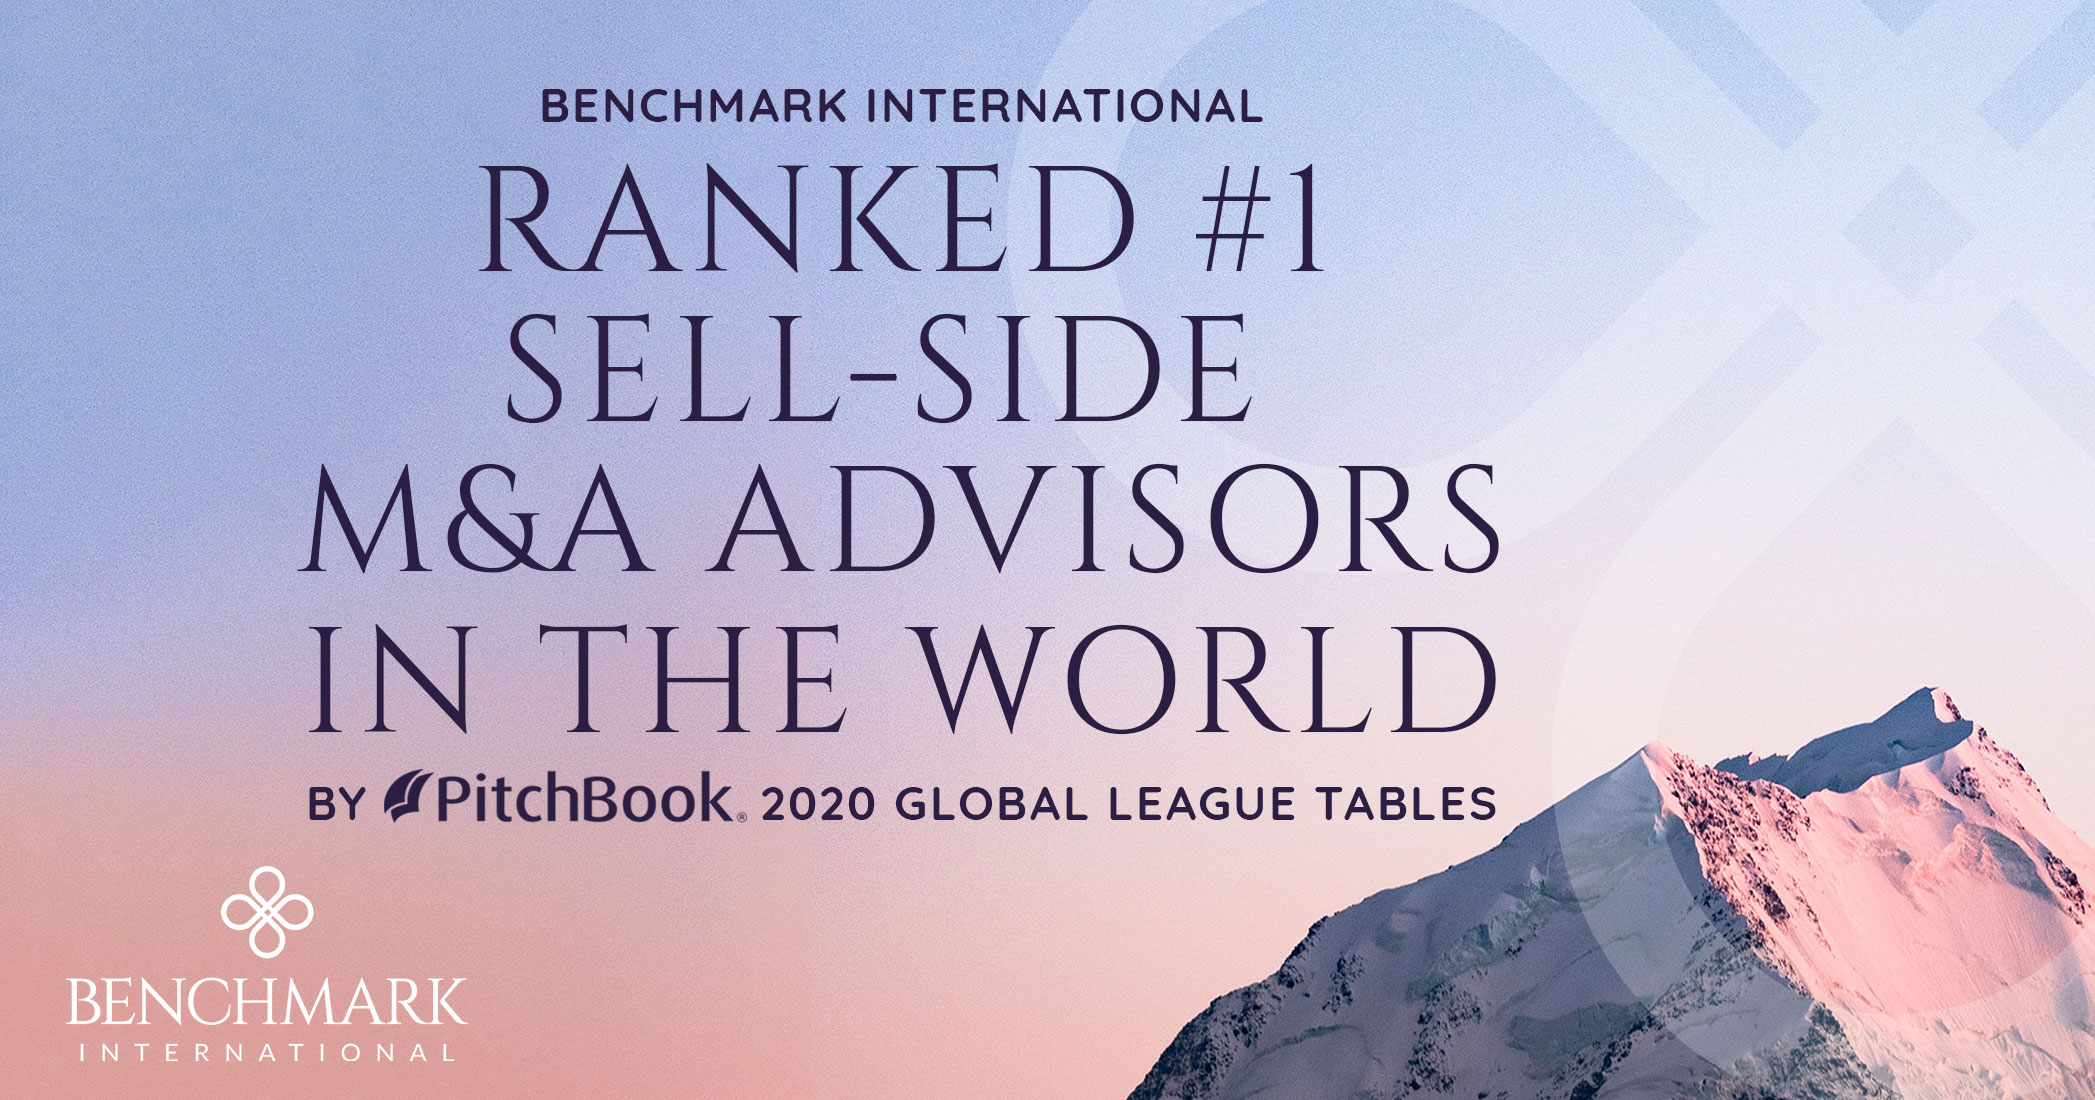 Benchmark International Ranked #1 Sell-Side M&A Advisors in the World by Pitchbook